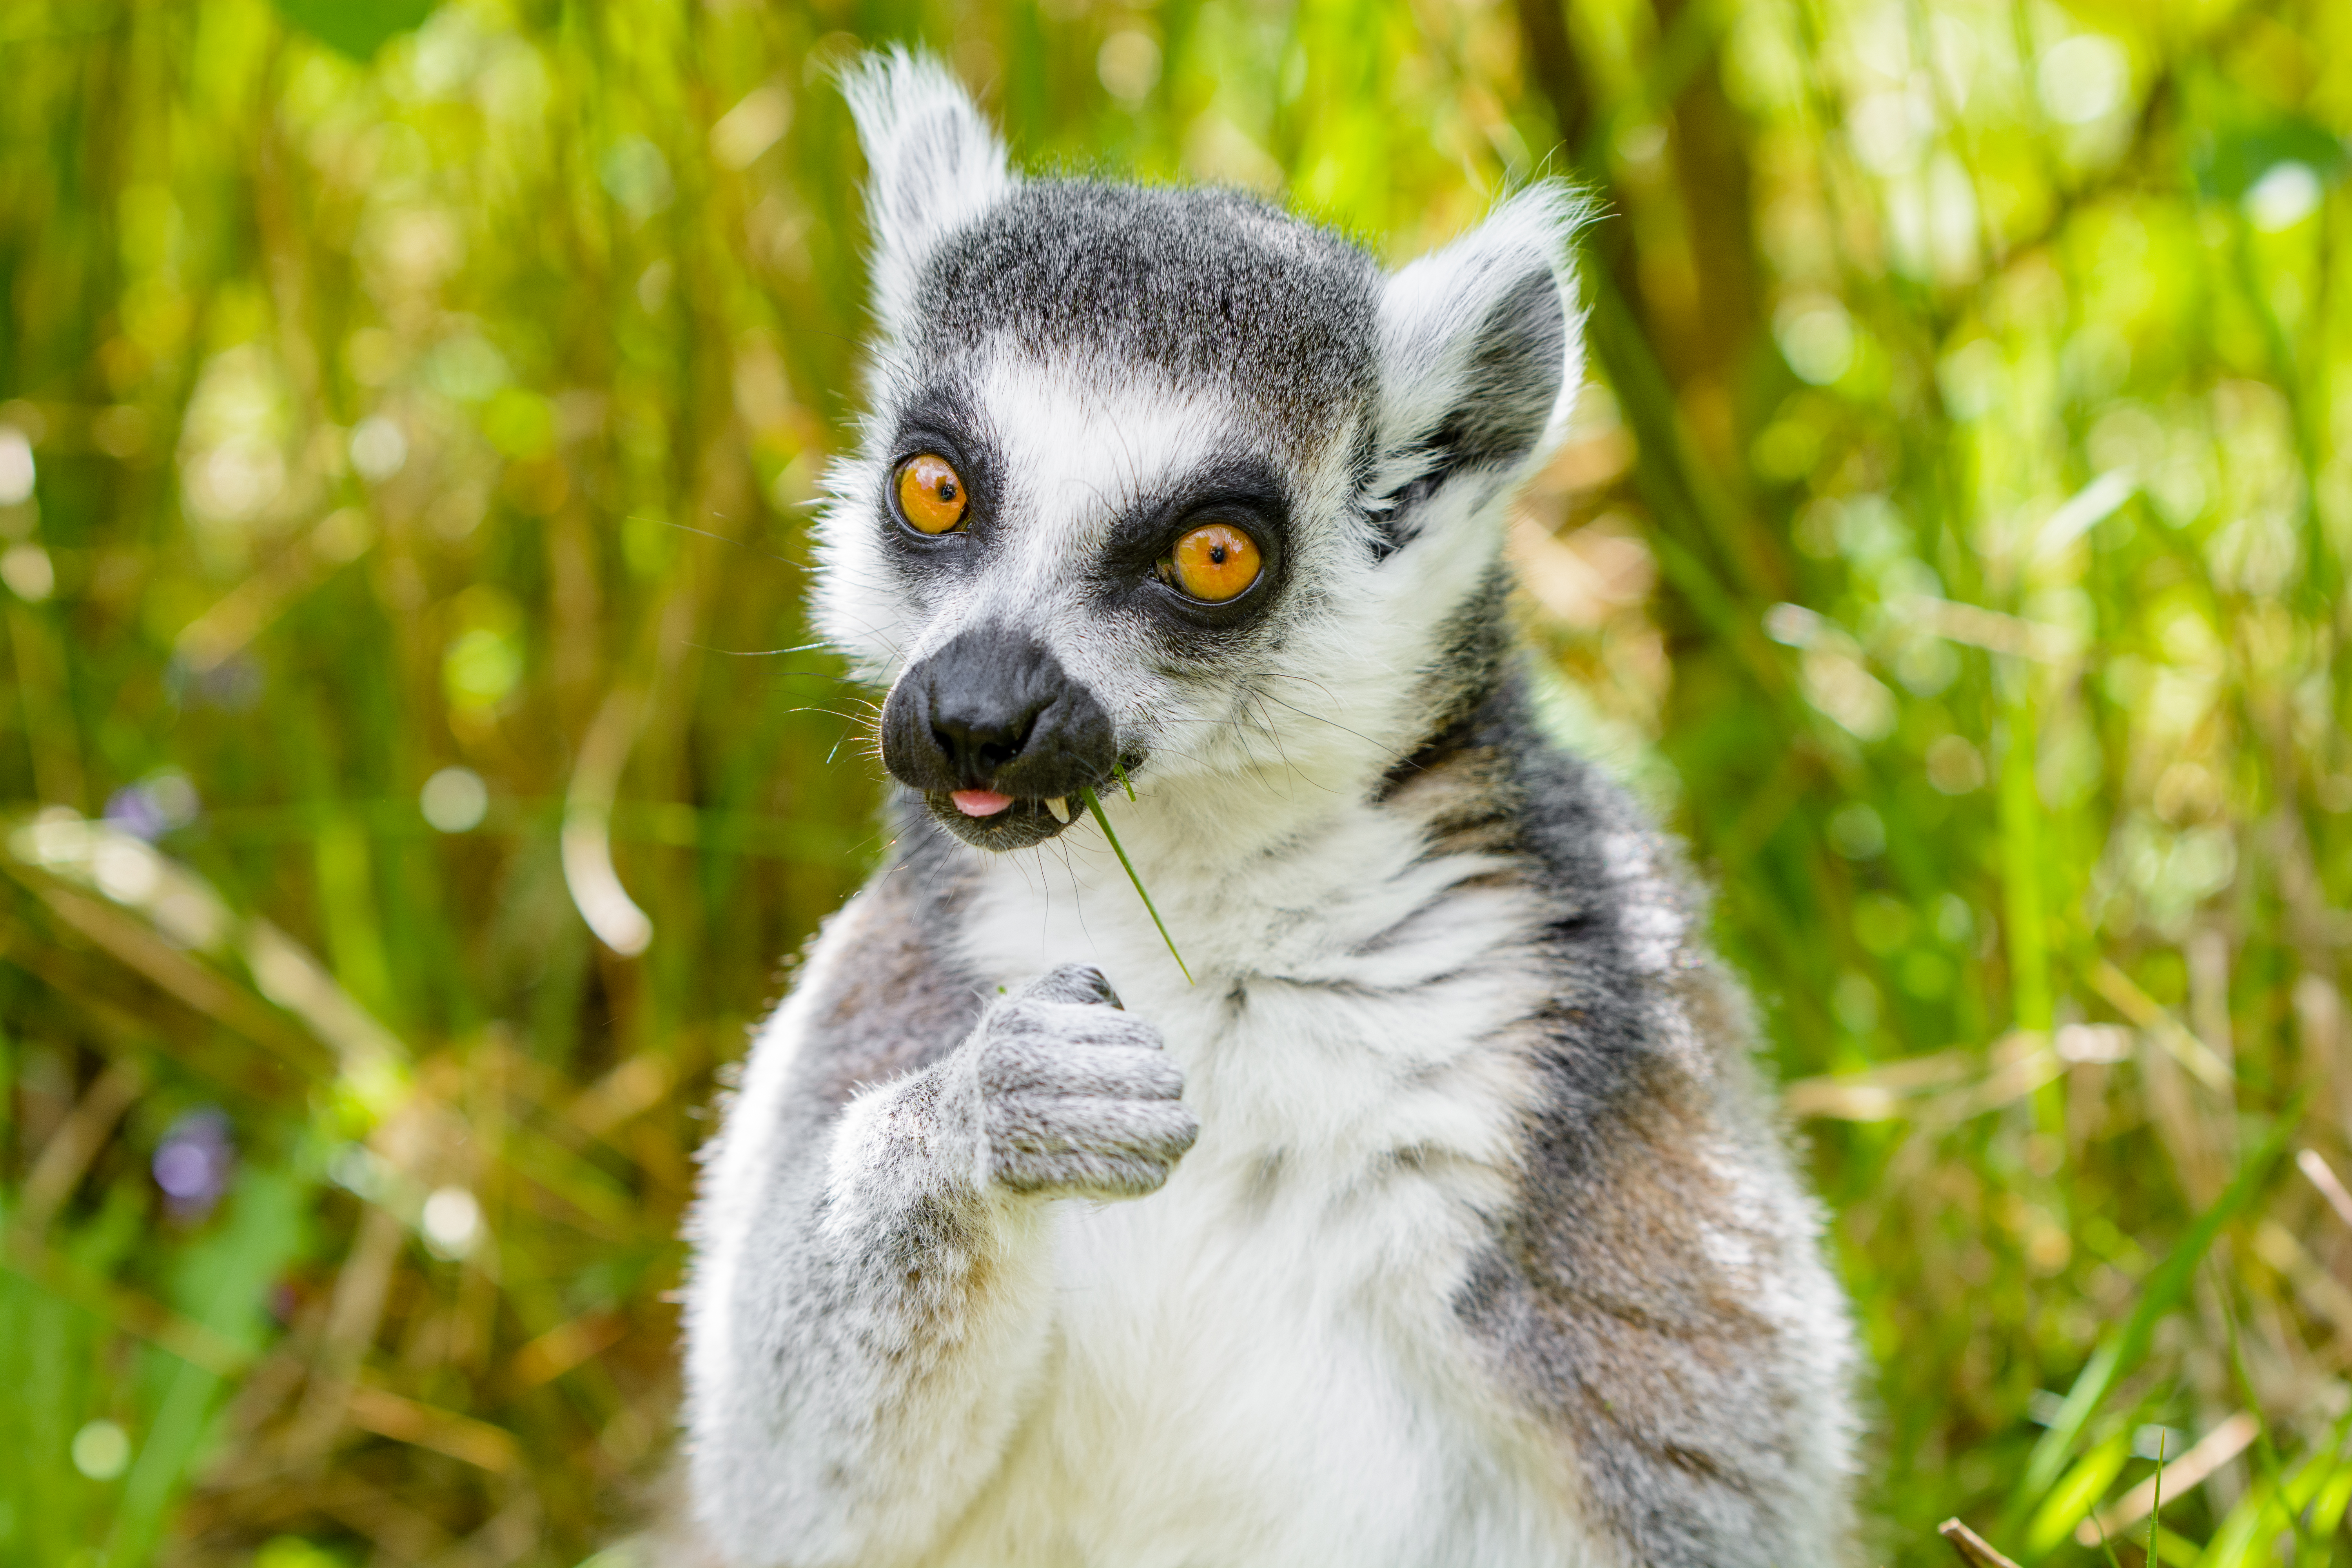 93326 download wallpaper Animals, Lemur, Cool, Funny, Grass, There Is, Eat, Animal screensavers and pictures for free